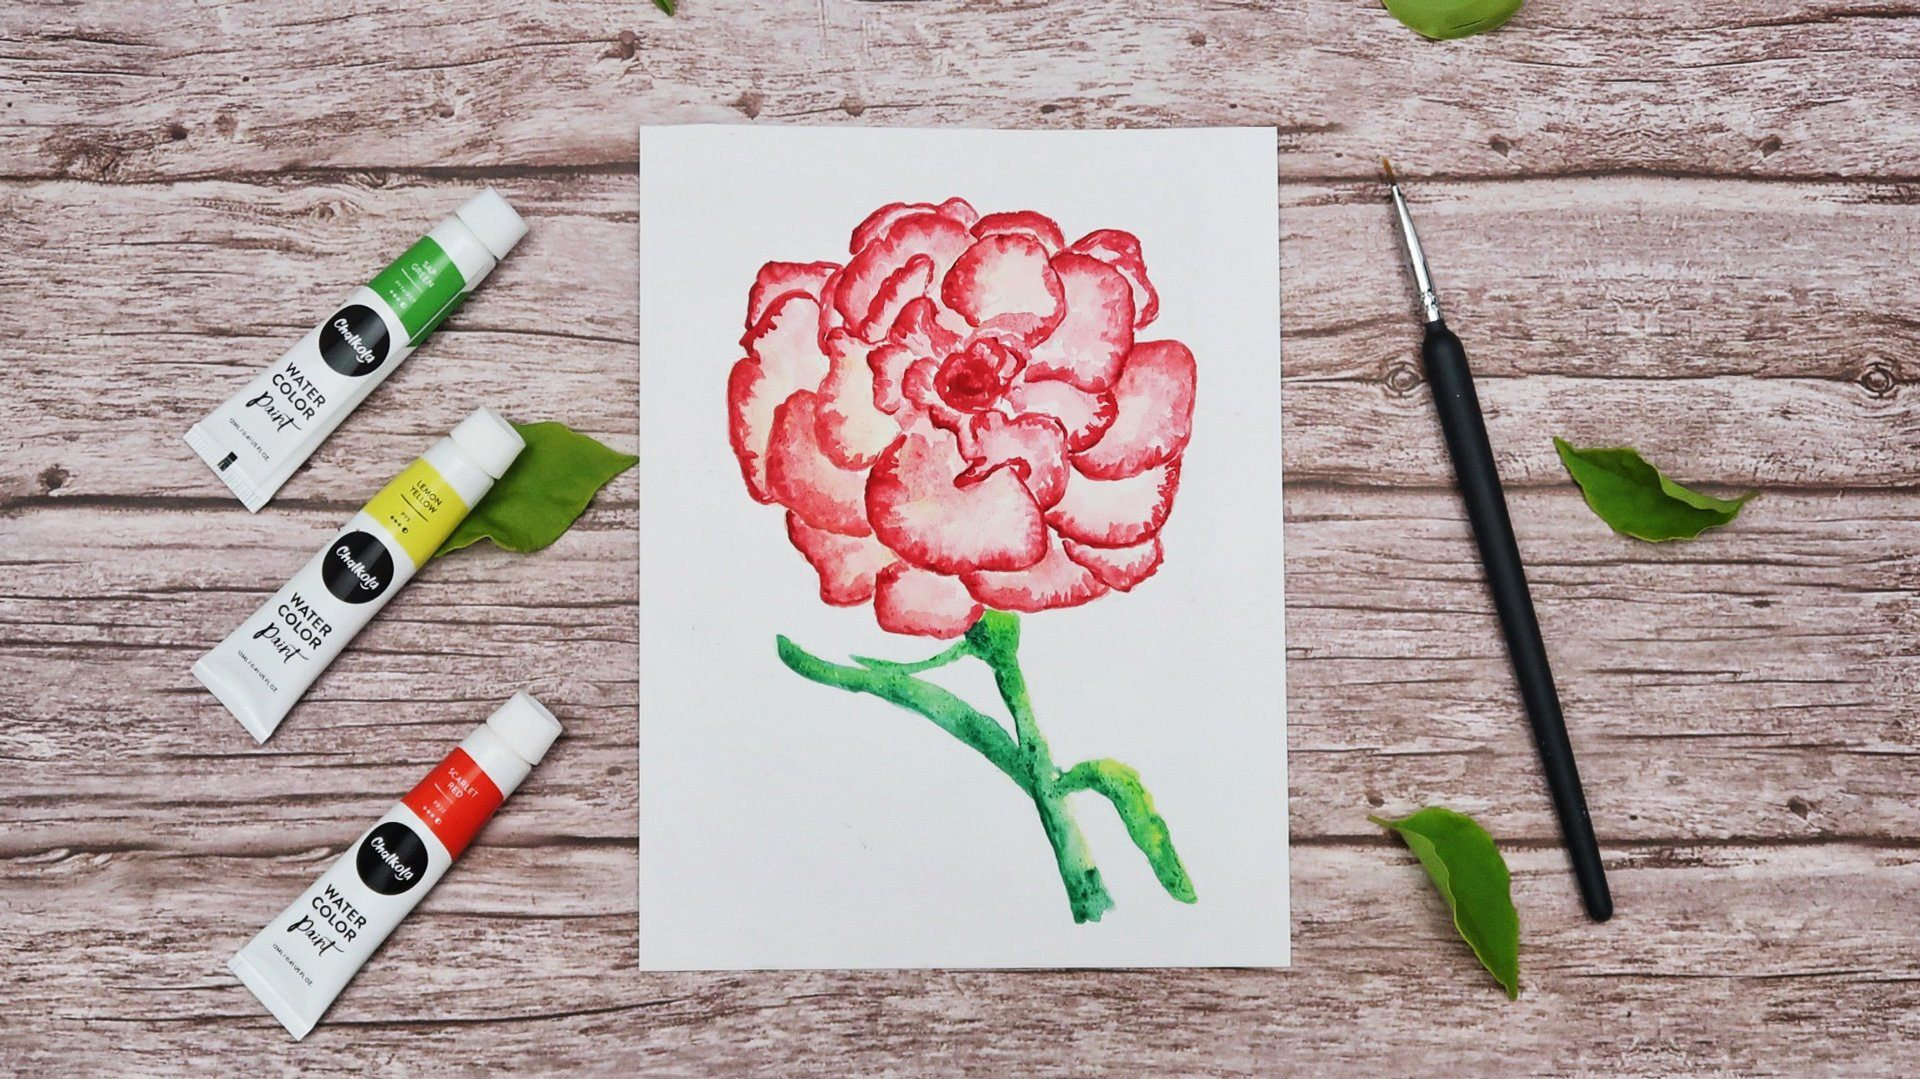 Paint a Carnation Using Watercolor | Chalkola Art Supply